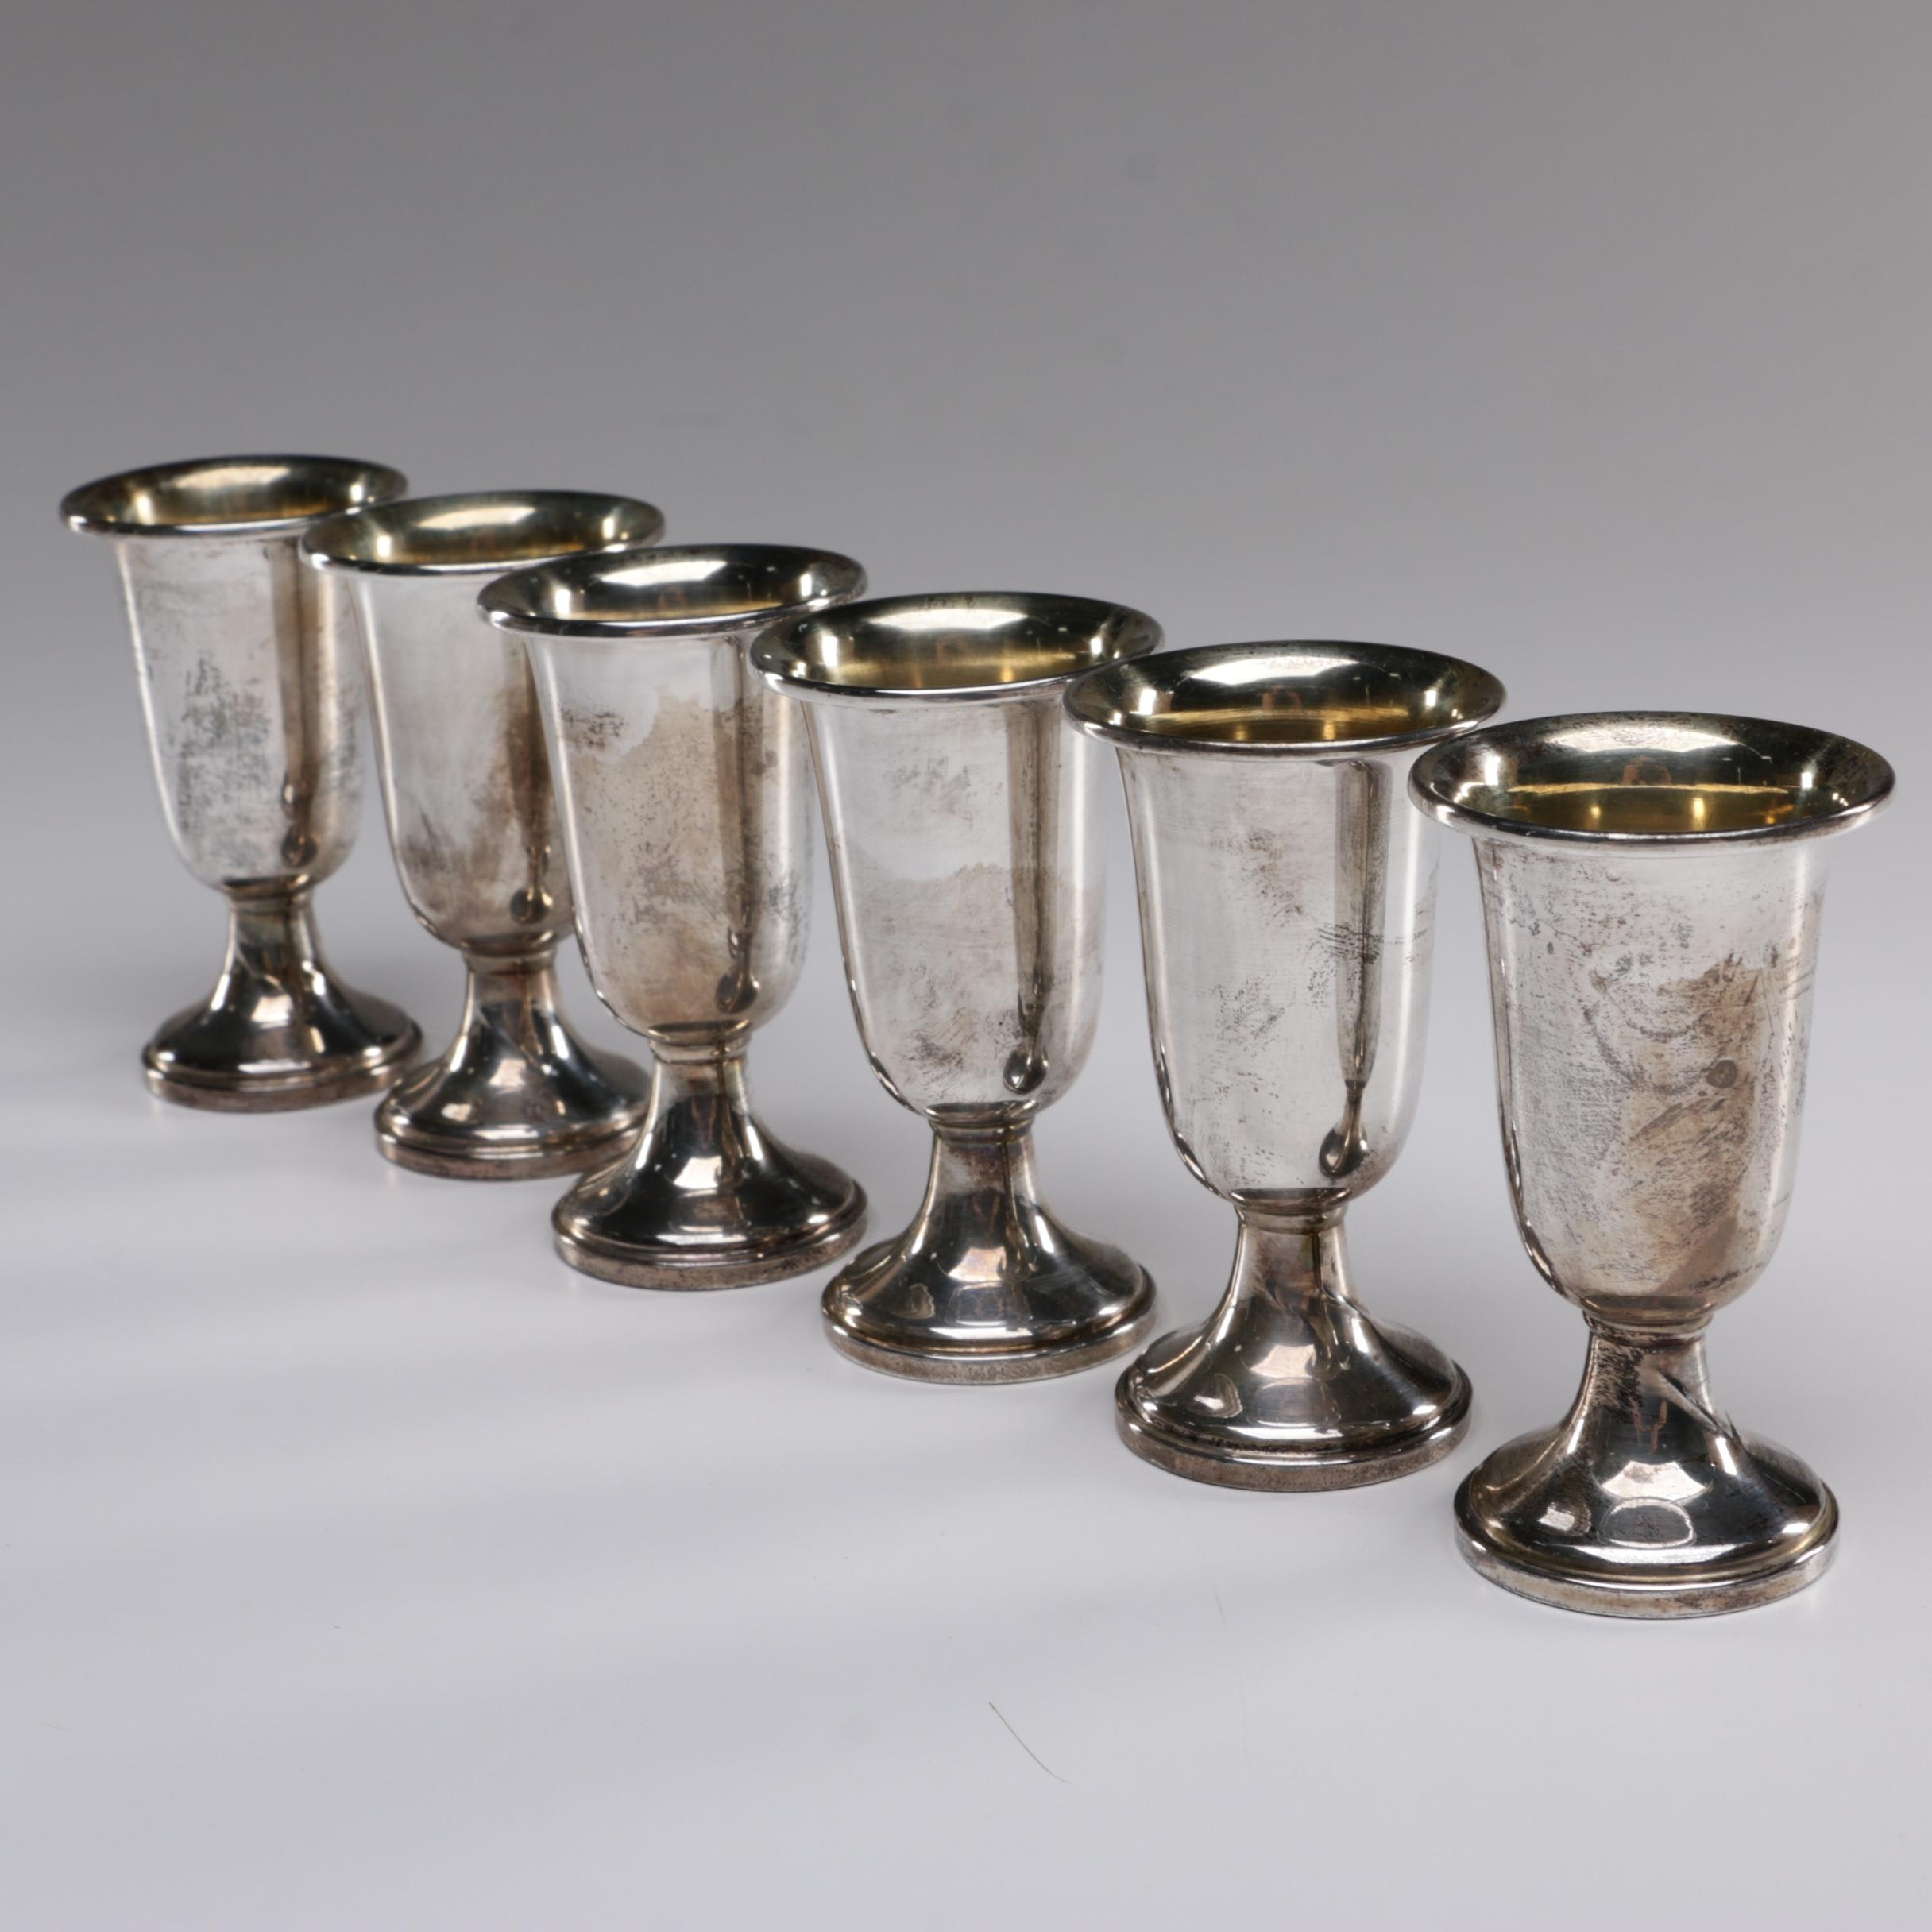 M. Fred Hirsch Co. Weighted Sterling Silver Cordials, c. 1920-1945